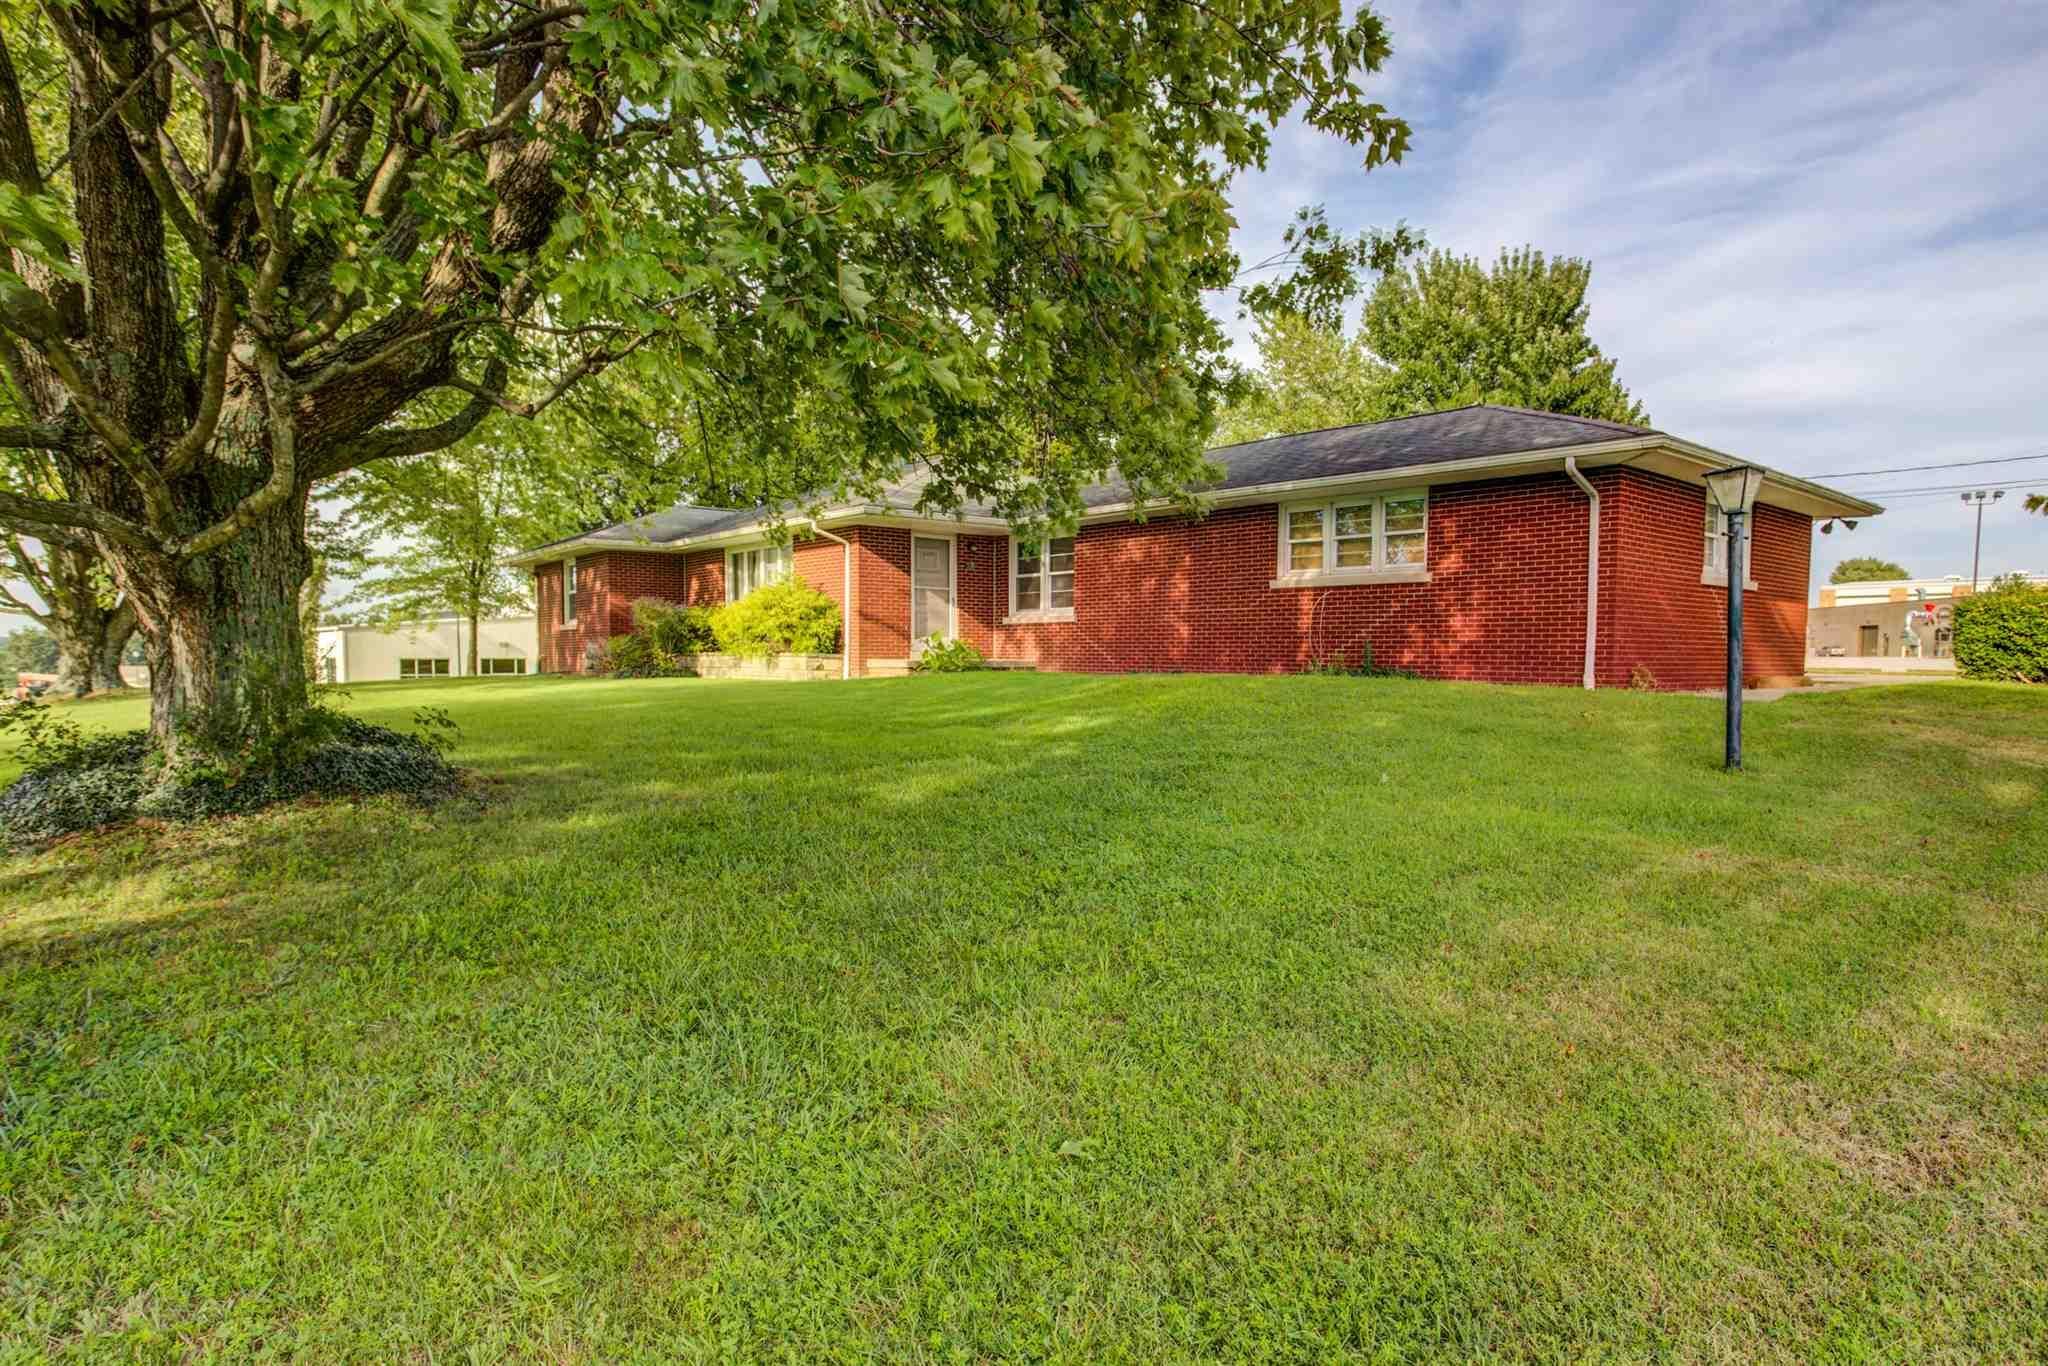 Motivated seller, bring offer! TOWN AND COUNTRY meet with original 60's charm in this brick ranch in the heart of Ferdinand. Enjoy all of the amenities of what Ferdinand has to offer while enjoying tranquility on your own 2.65 acre lot. Inside offers a huge living room with gas fireplace. There is a dining/flex area currently used as an office alongside the eat-in kitchen with all appliances (and vintage rotisserie oven!) included. This home offers vintage pieces one will not be able to find anywhere else, including the oven, original playing card wallpaper, wood burning fireplace in the basement, radiant ceiling heat, and light panels in the basement. Completing the upstairs is three generous sized bedrooms, bathroom, two car garage, and cedar closet along with other storage areas. Traveling downstairs, you will immediately be greeted by the ultimate party/gathering space. Custom barnwood flanks the walls. Dry bar is included, pool table is negotiable. Laundry area is in the basement with washer and dryer negotiable. There is enough space in the area to add another bathroom if desired. Outside, there is a great covered patio perfect for outside dining. Numerous restaurants, walking trails, schools, YMCA, library, and gas are within seconds of this property. Truly a one-of-a-kind property!